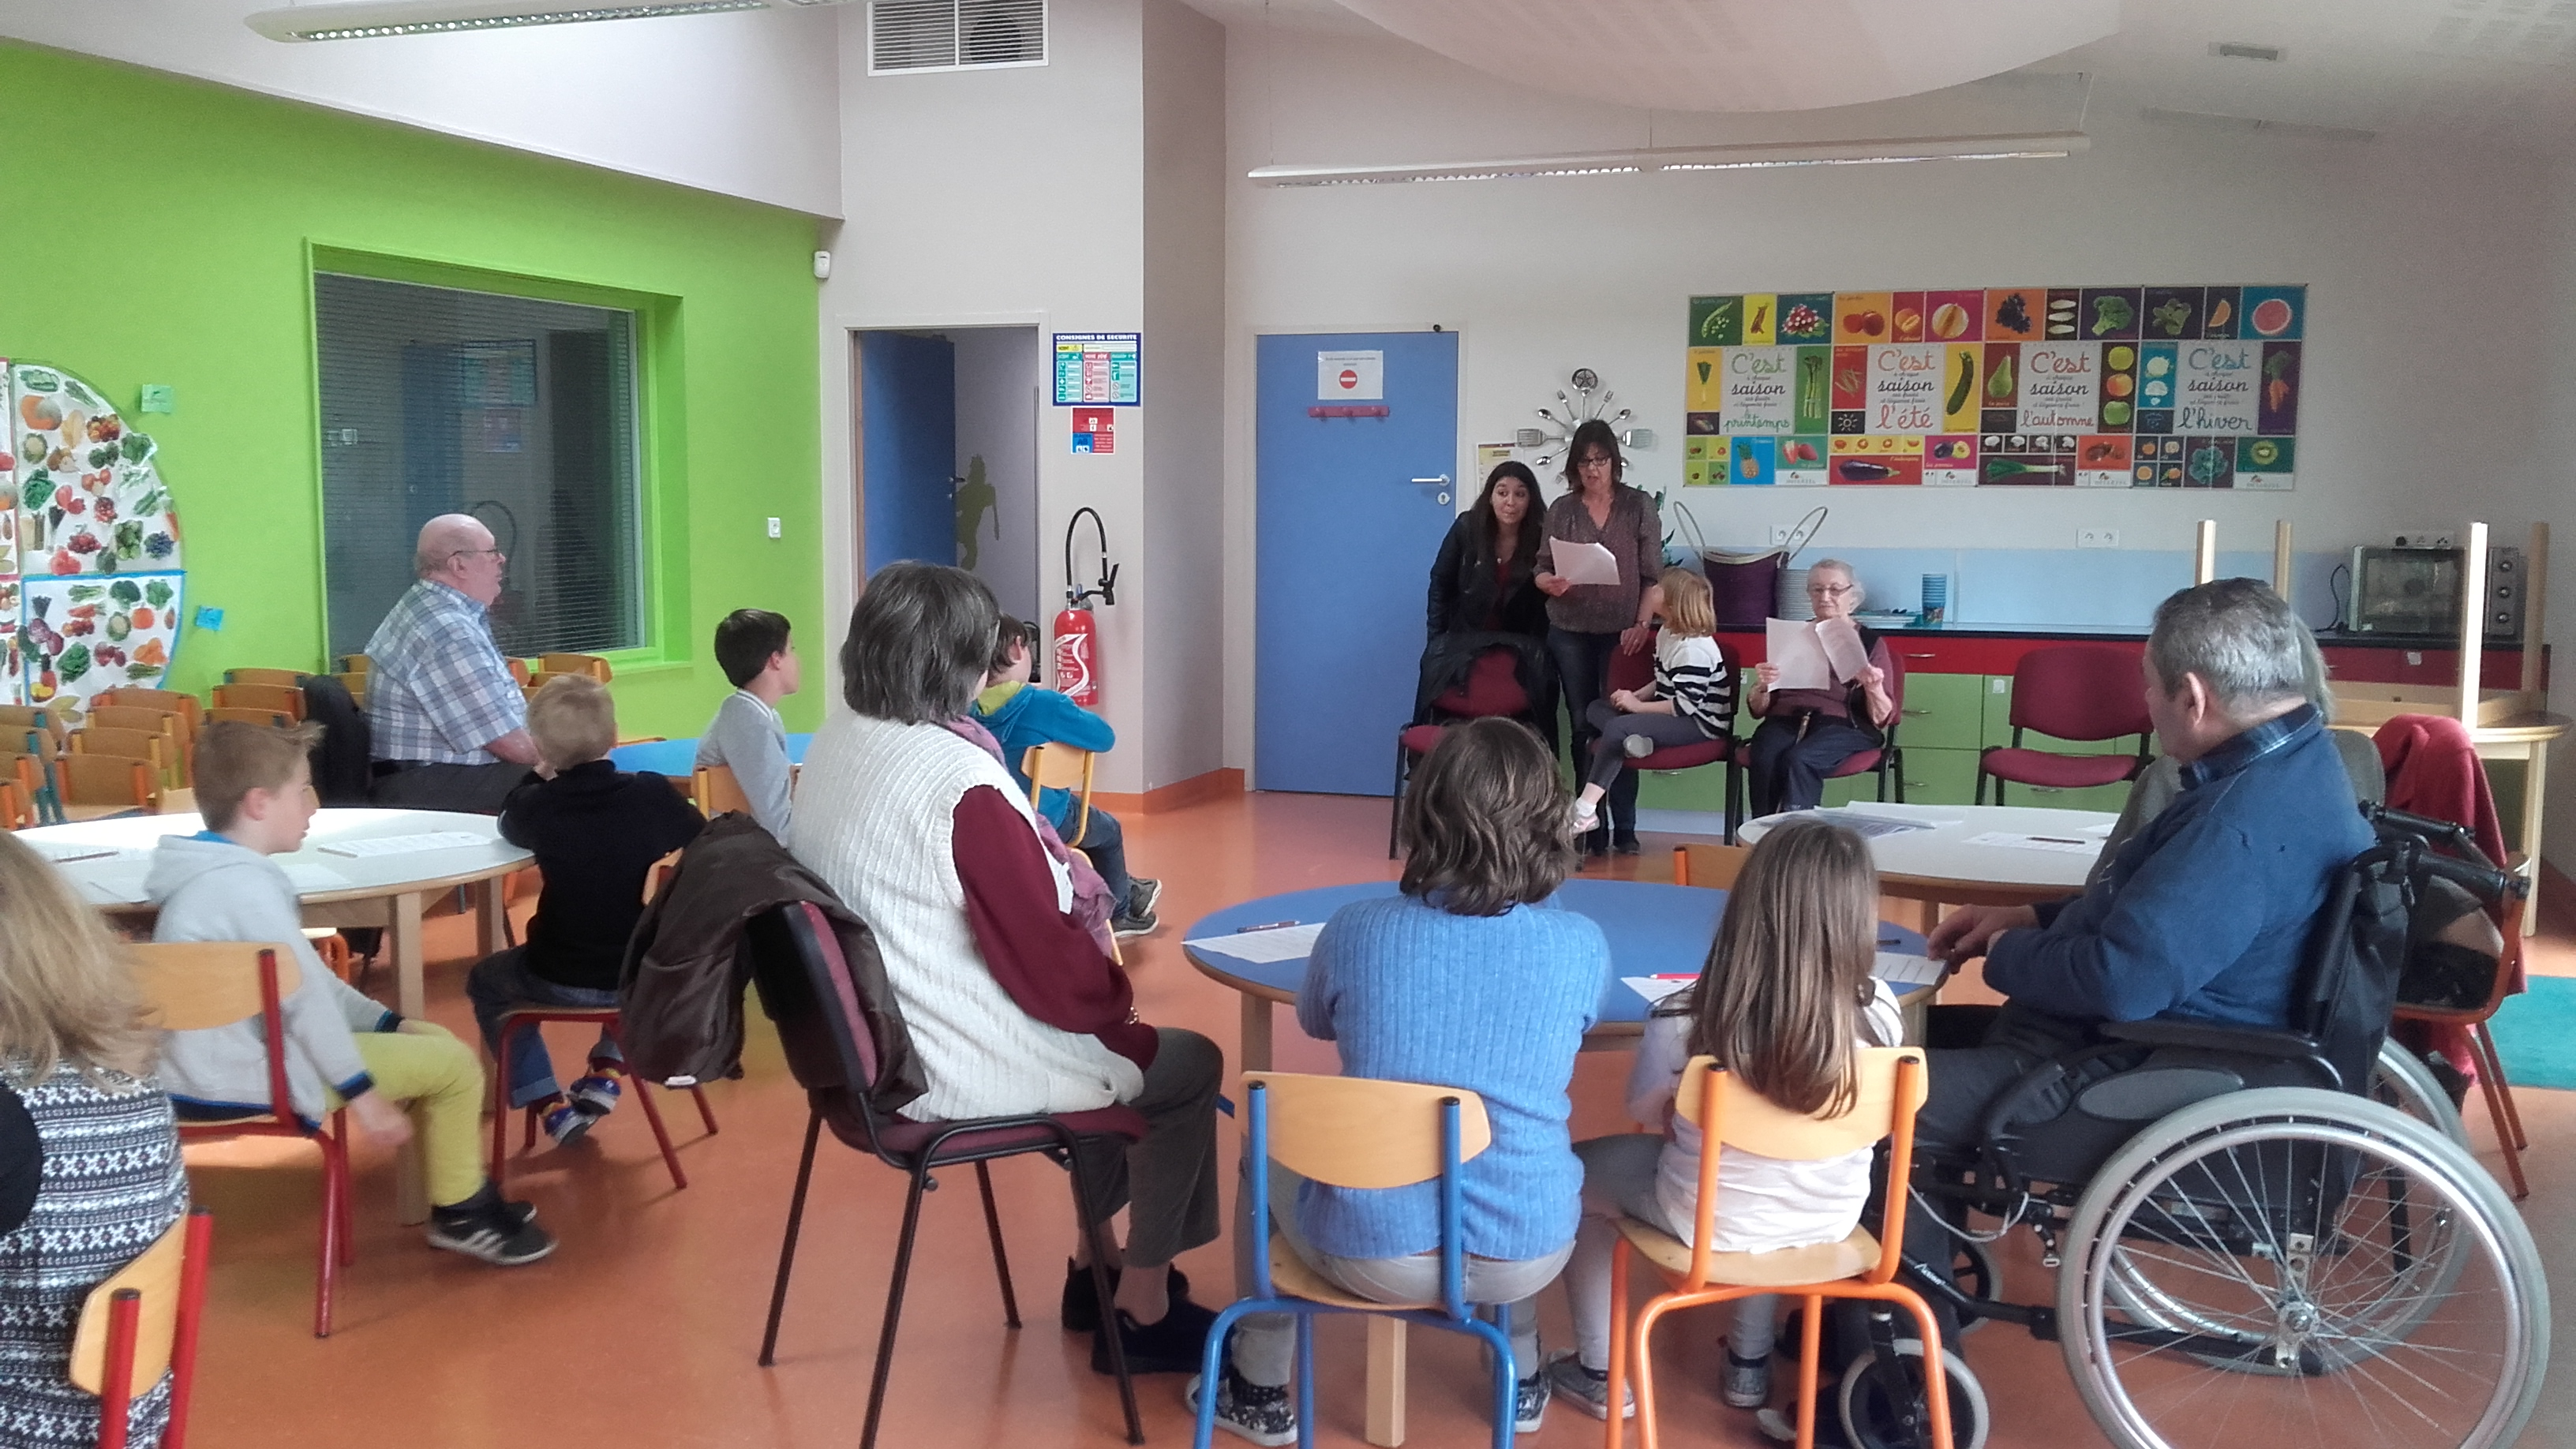 rencontre intergenerationnelle creche